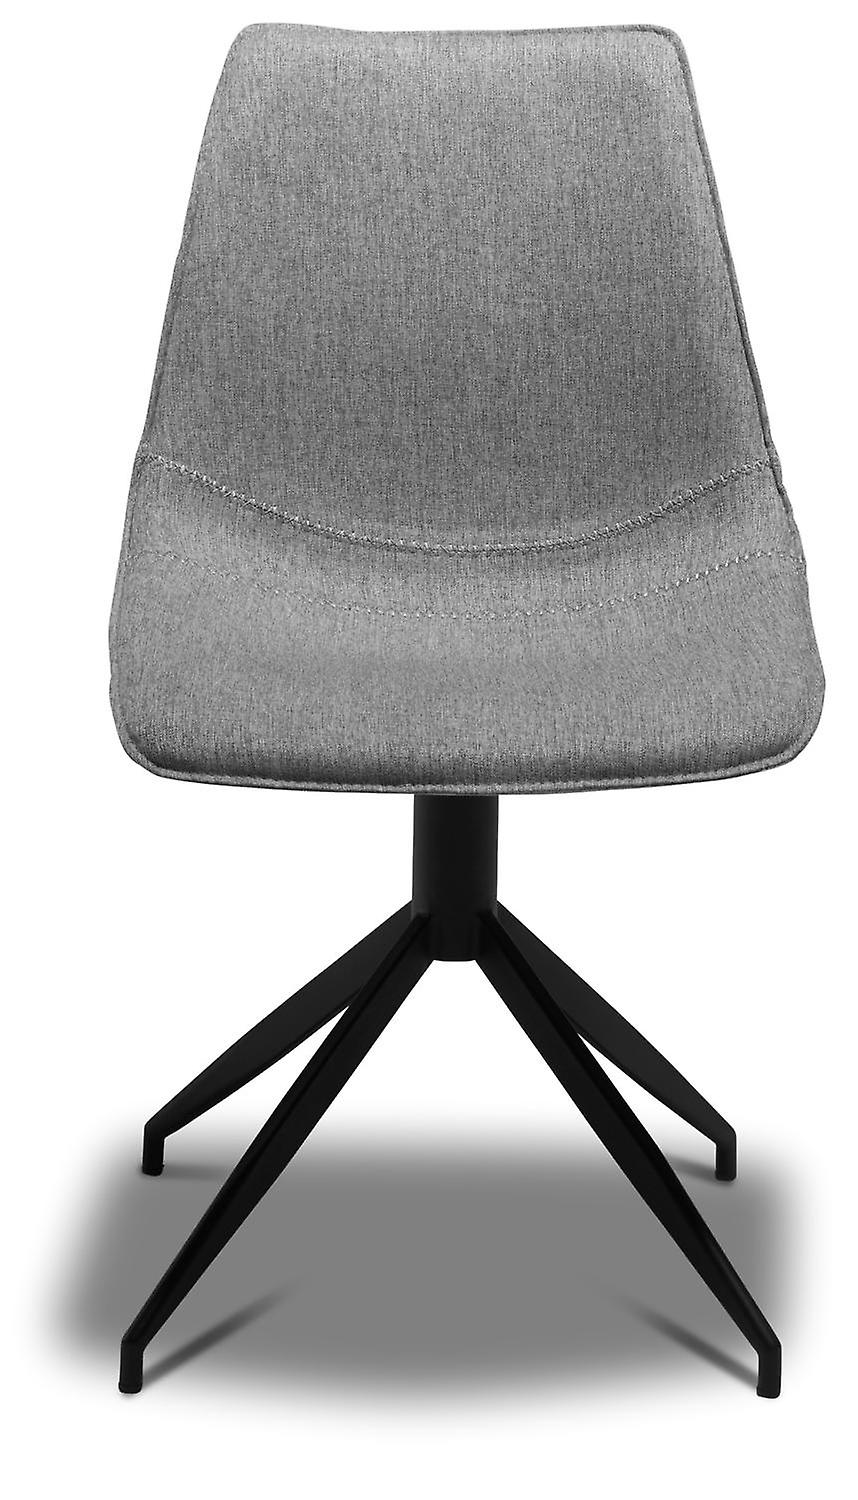 Furnhouse Isabel Dining Chair, Light Grey, Metal Base, 48x57x85 cm, Set of 2